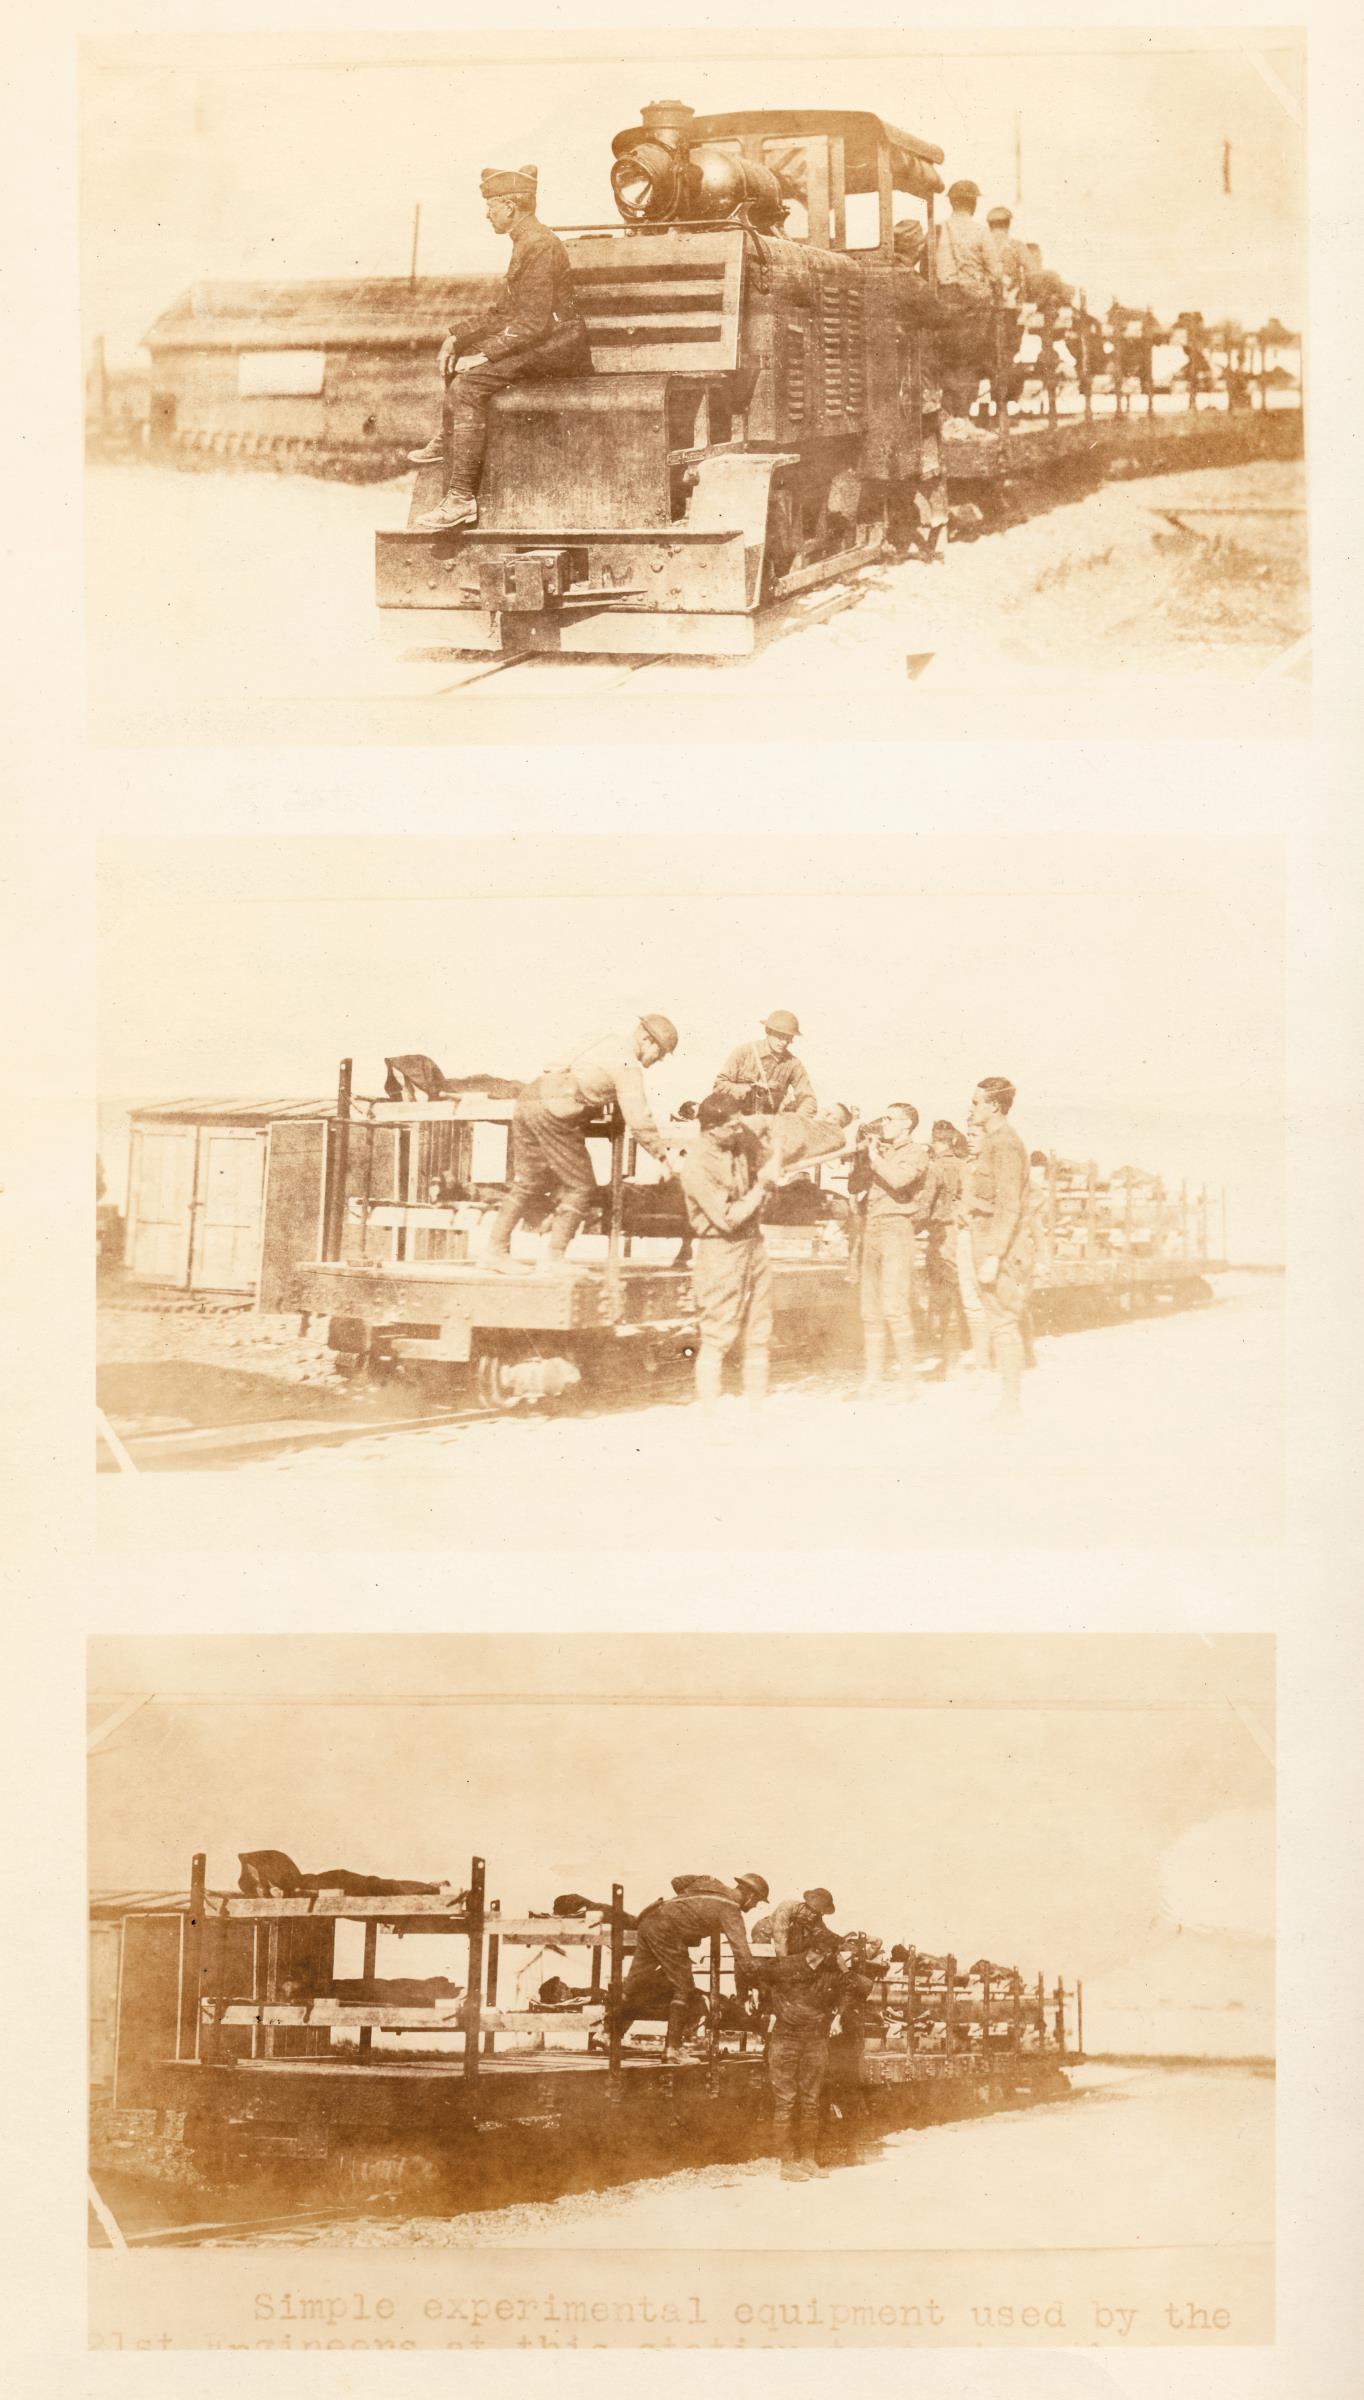 Tracks of narrow-gauge railroads, with open cars, ran directly from the front to the receiving wards of French hospitals and some units such as Yale Mobile Operating Unit No. 39.